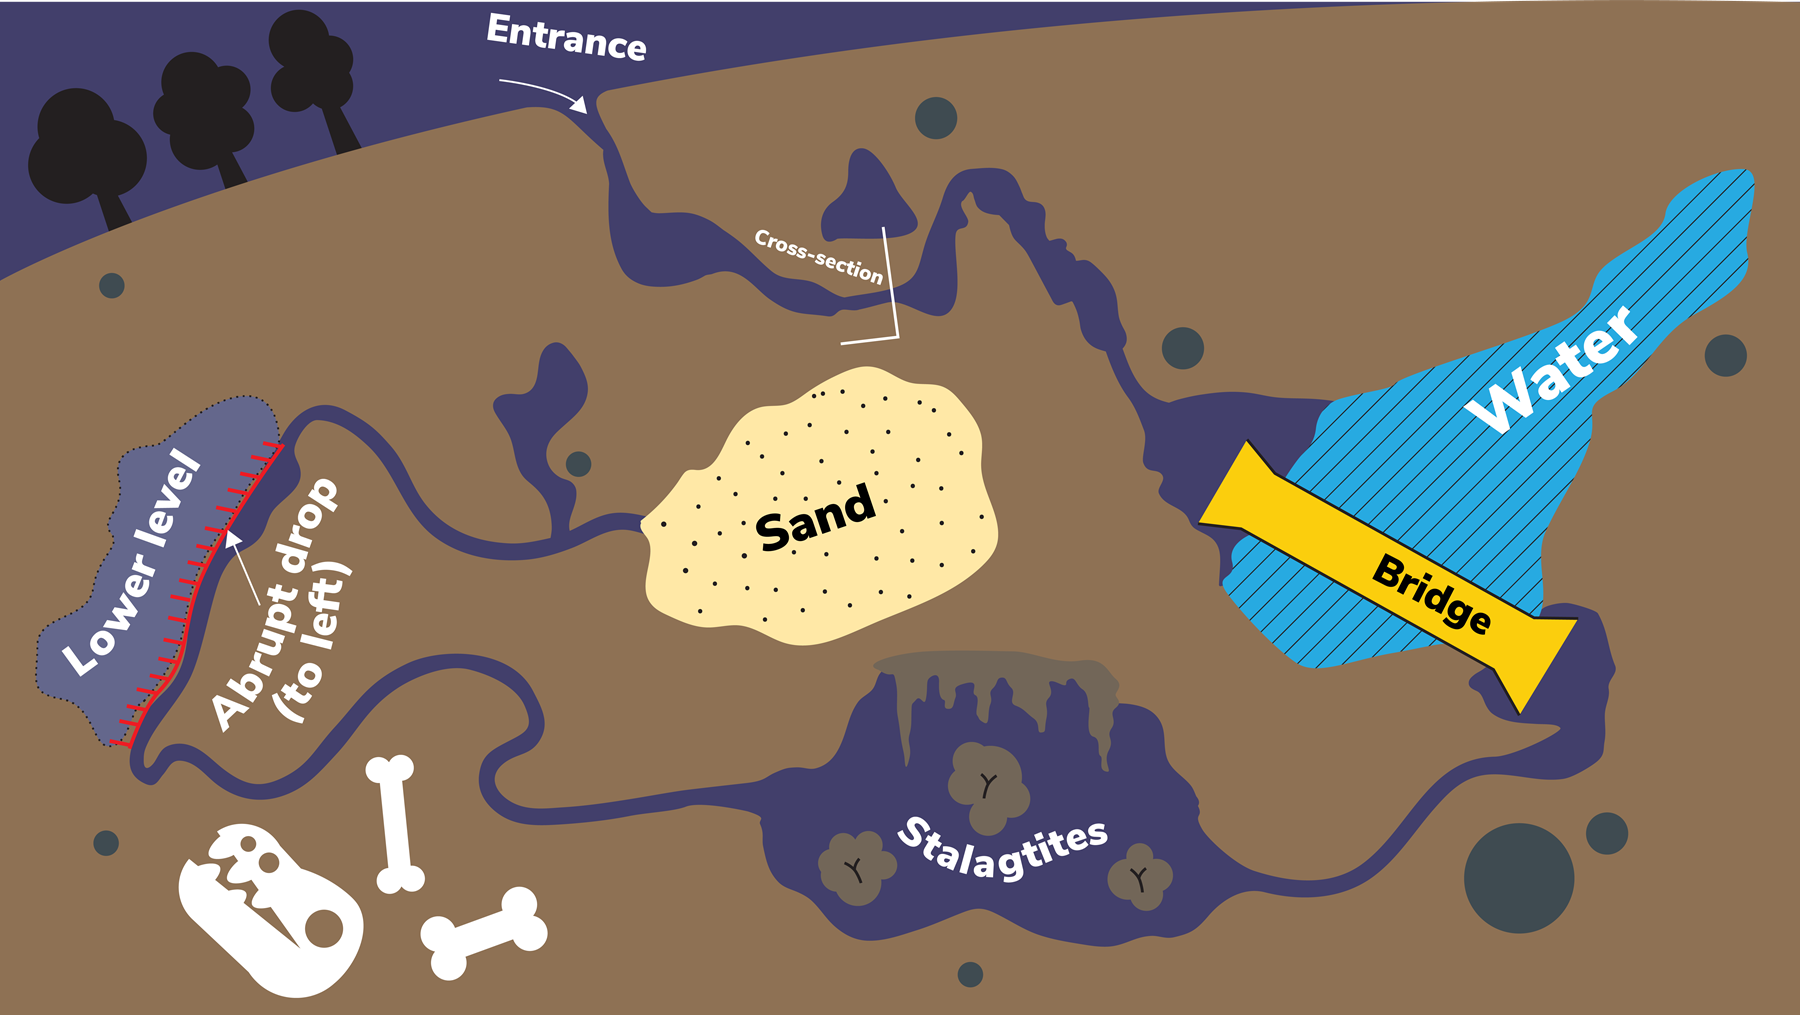 An example drawing of a cave map; with features including sand, water, bridge, stalagtites, a lower level and a cross section.